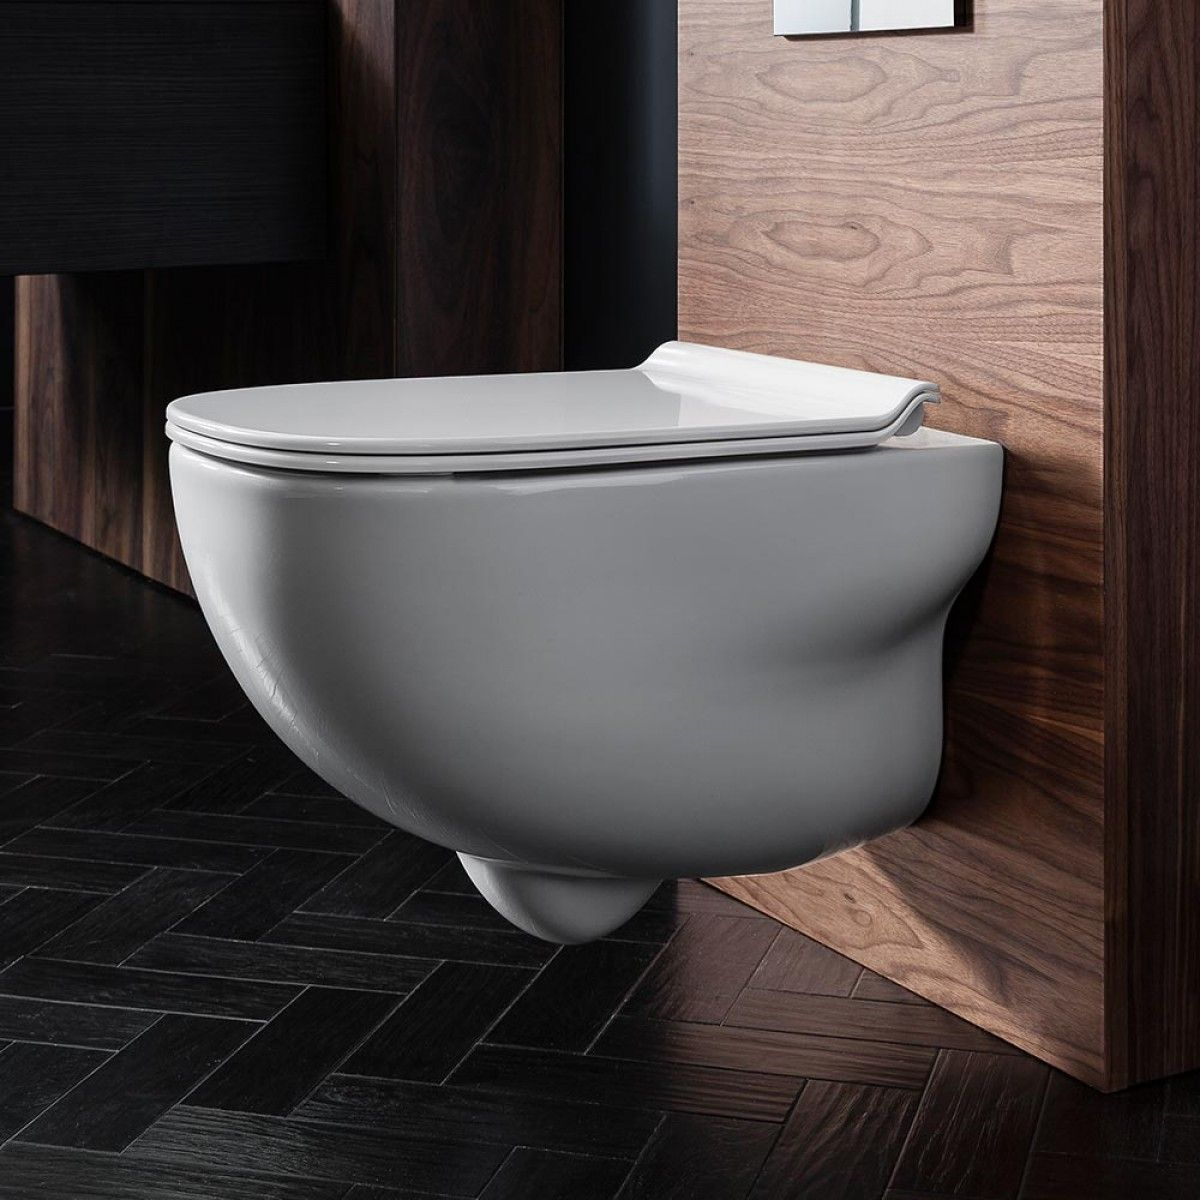 Wall Hung Toilet With Soft Lid Closing With Images Wall Hung